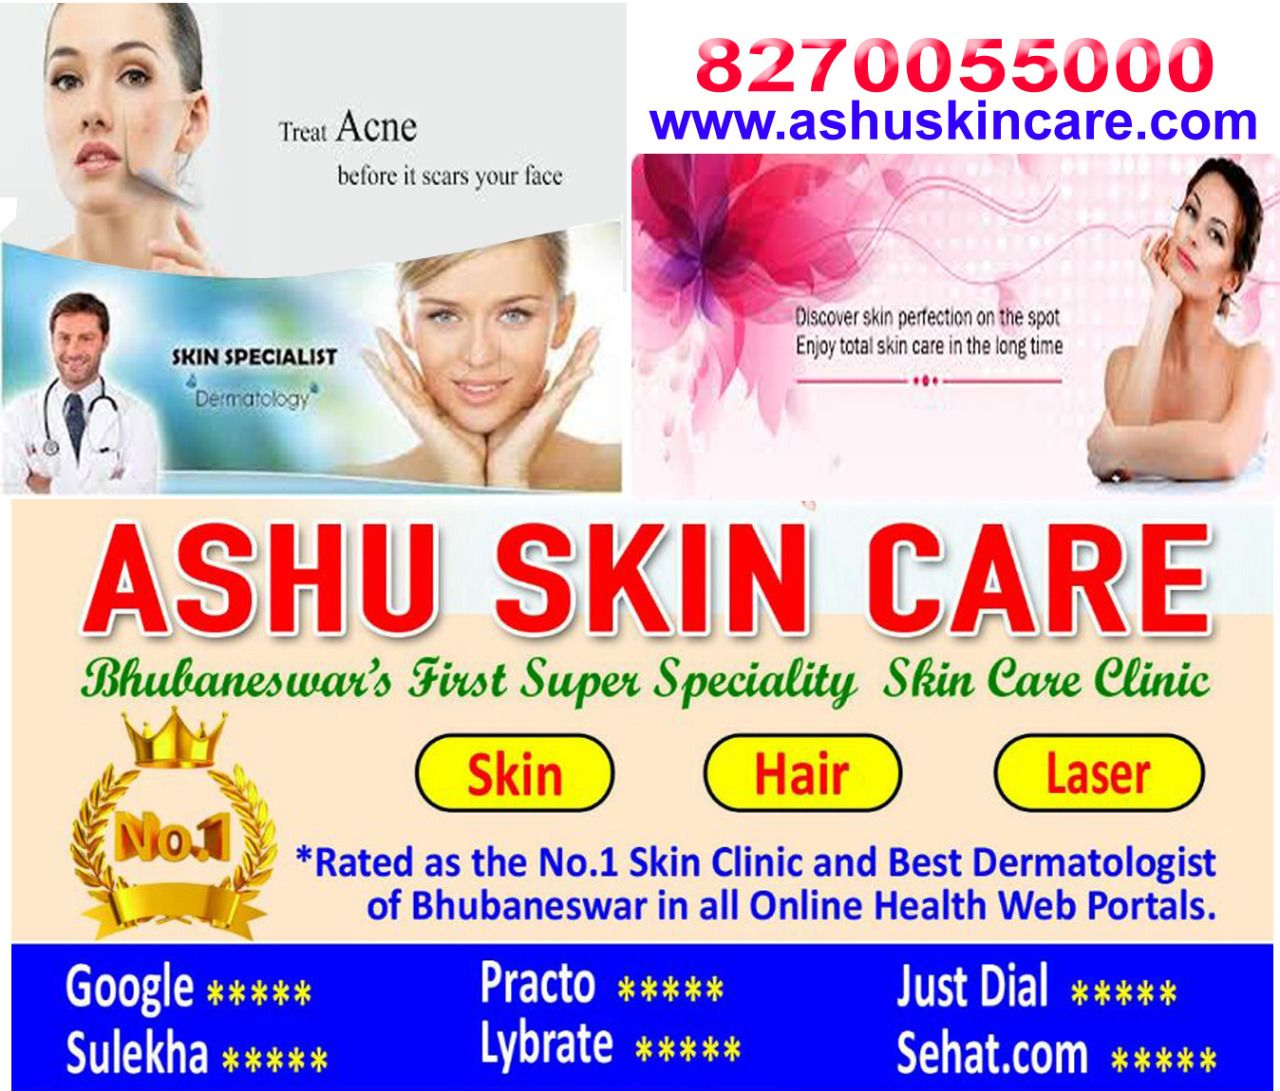 Lady Hair Specialist in bhubaneswar Trichology clinic in